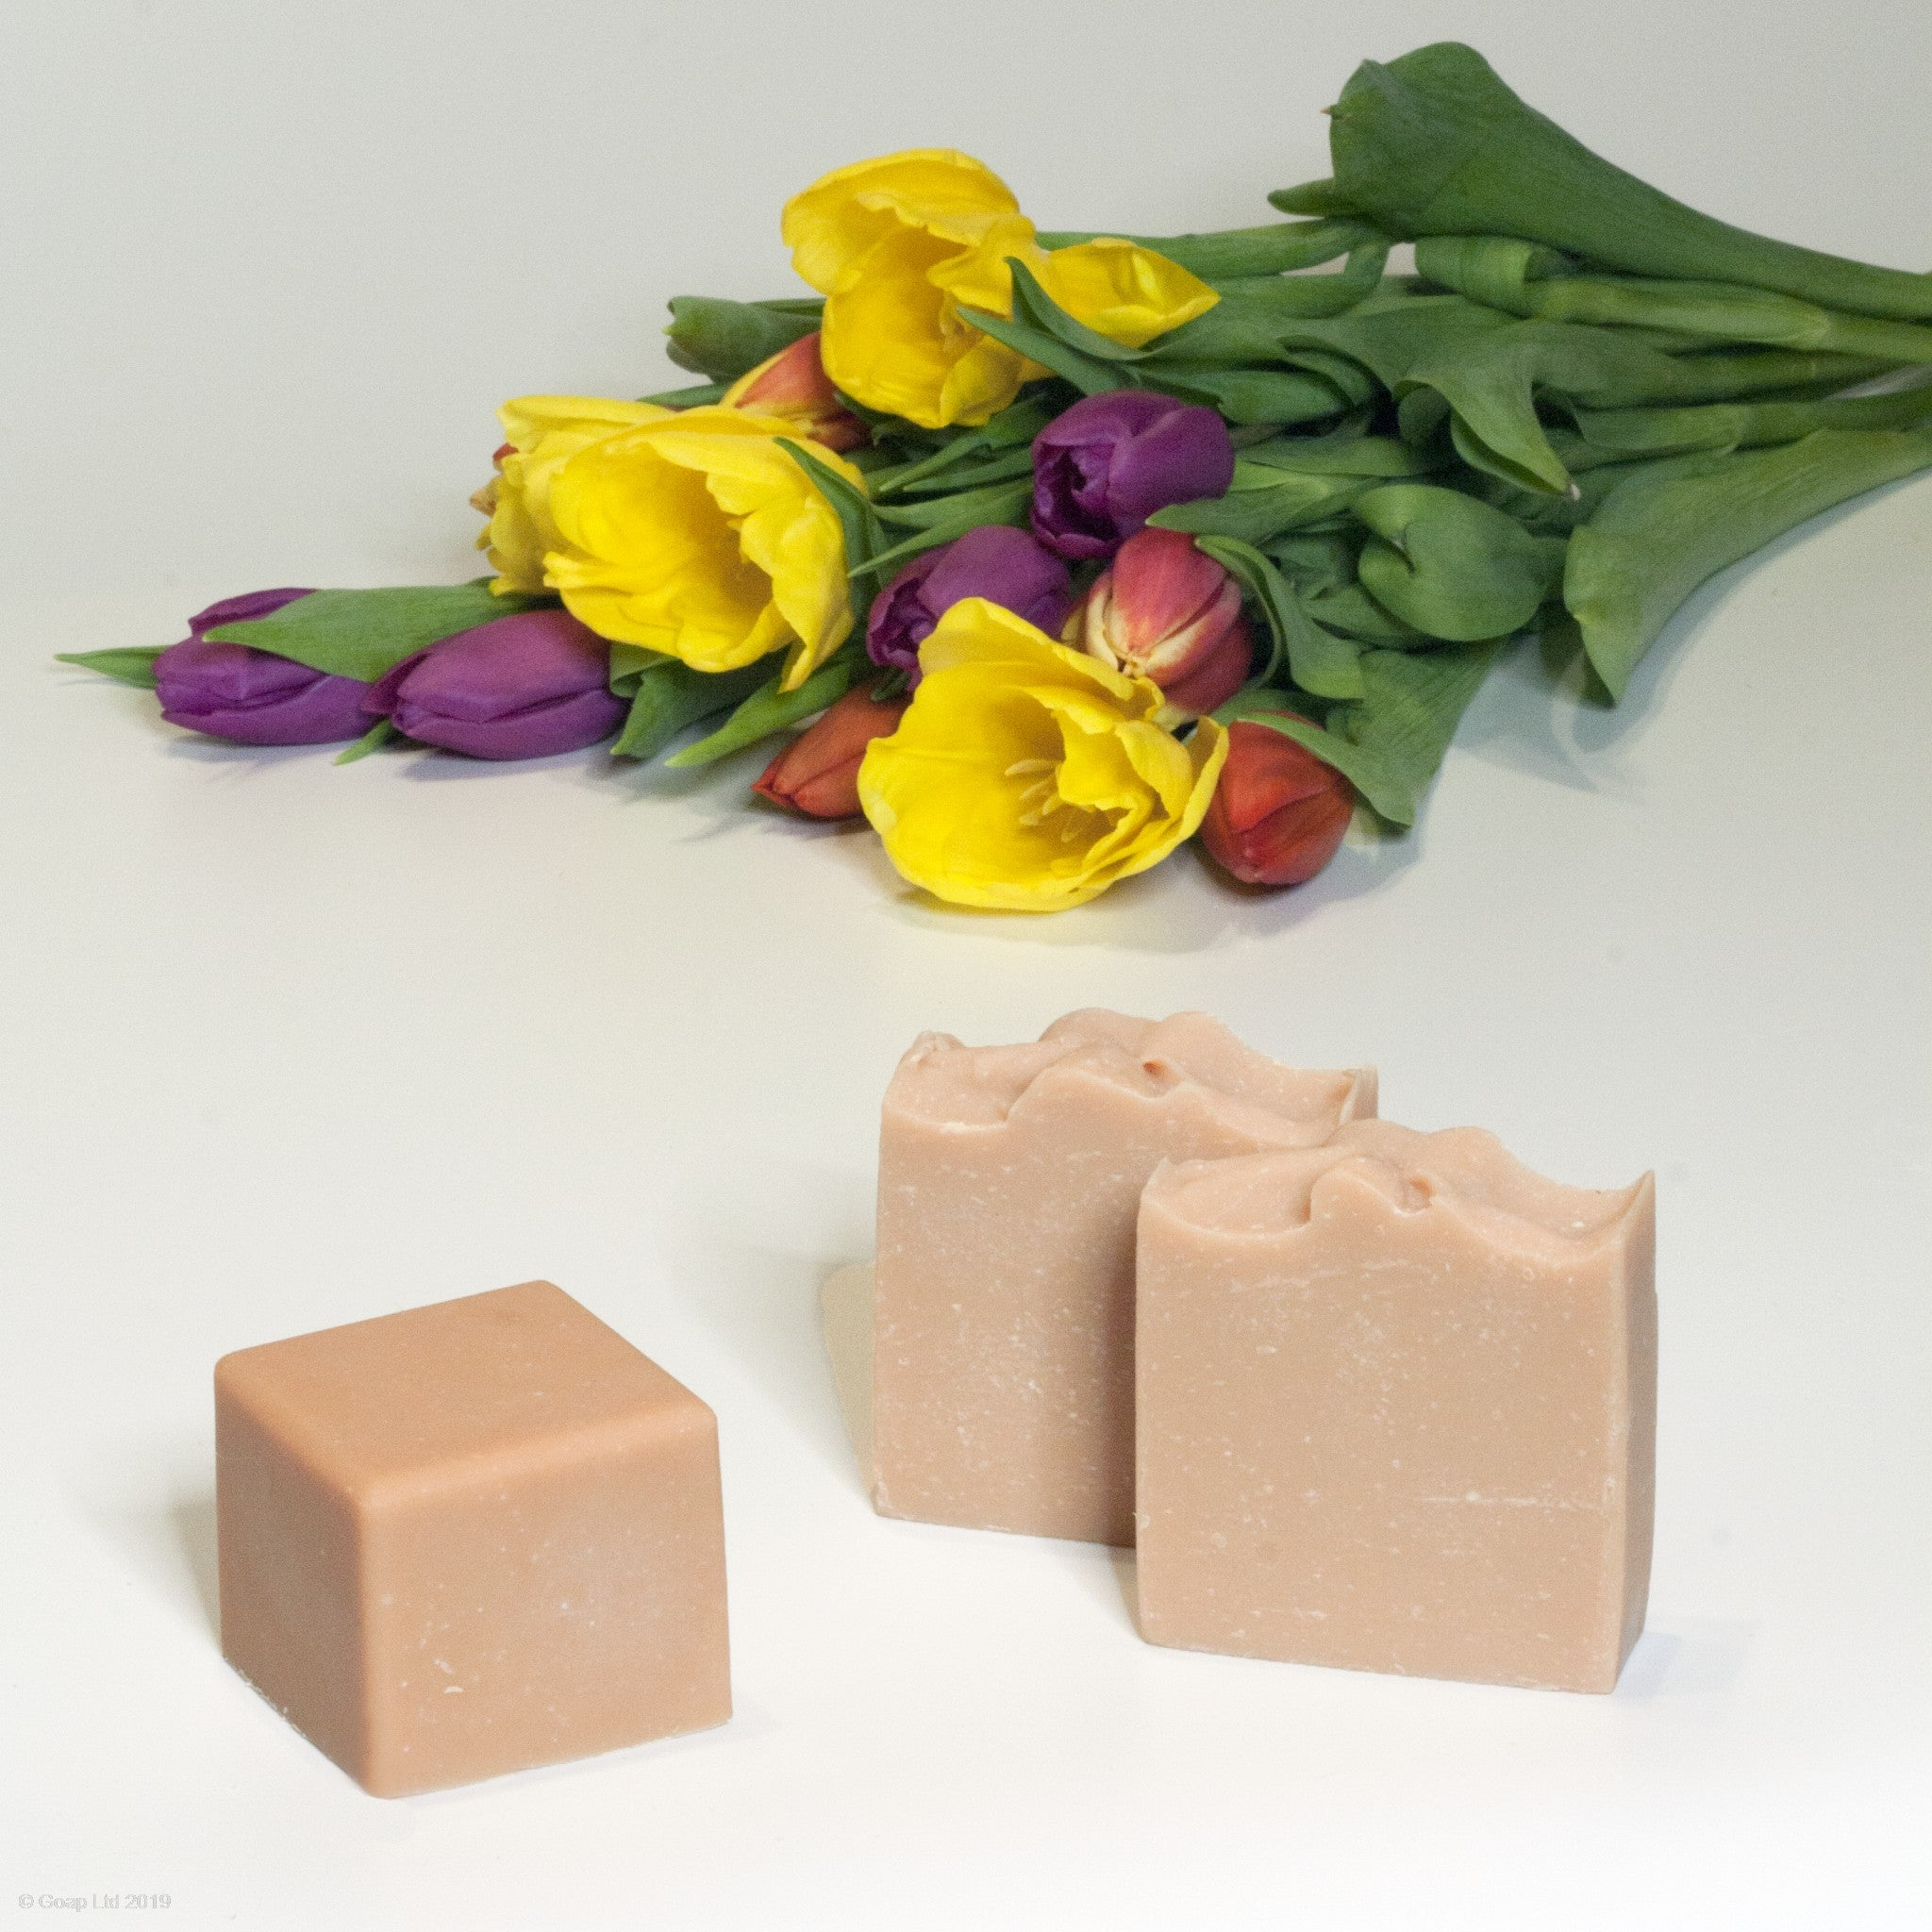 Flowery Goat Soap from Goap